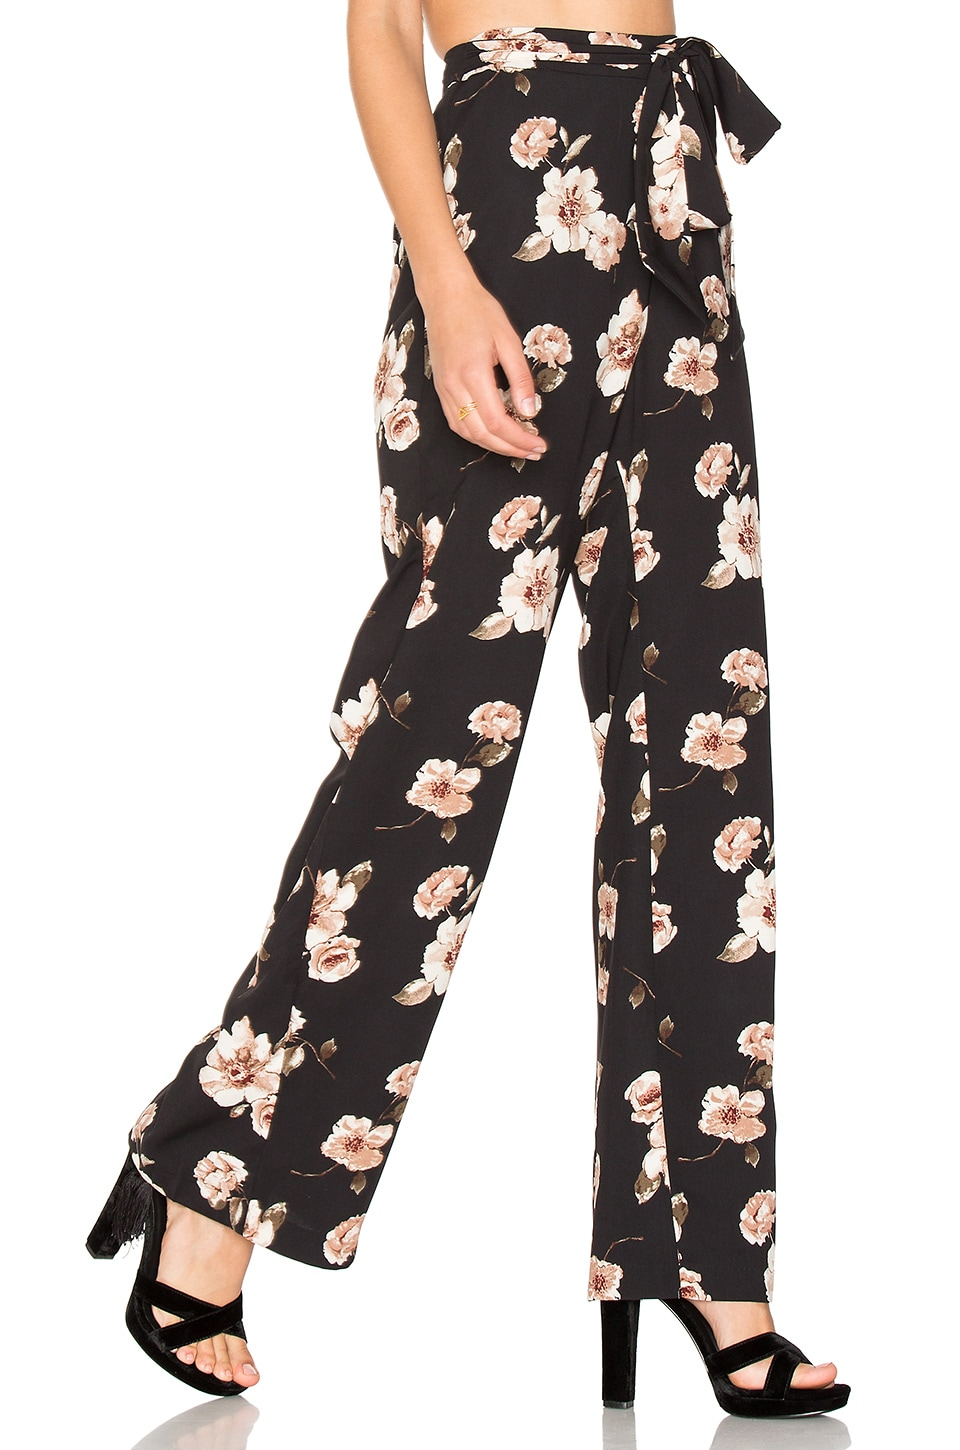 J.O.A. Print Pant in Black Multi